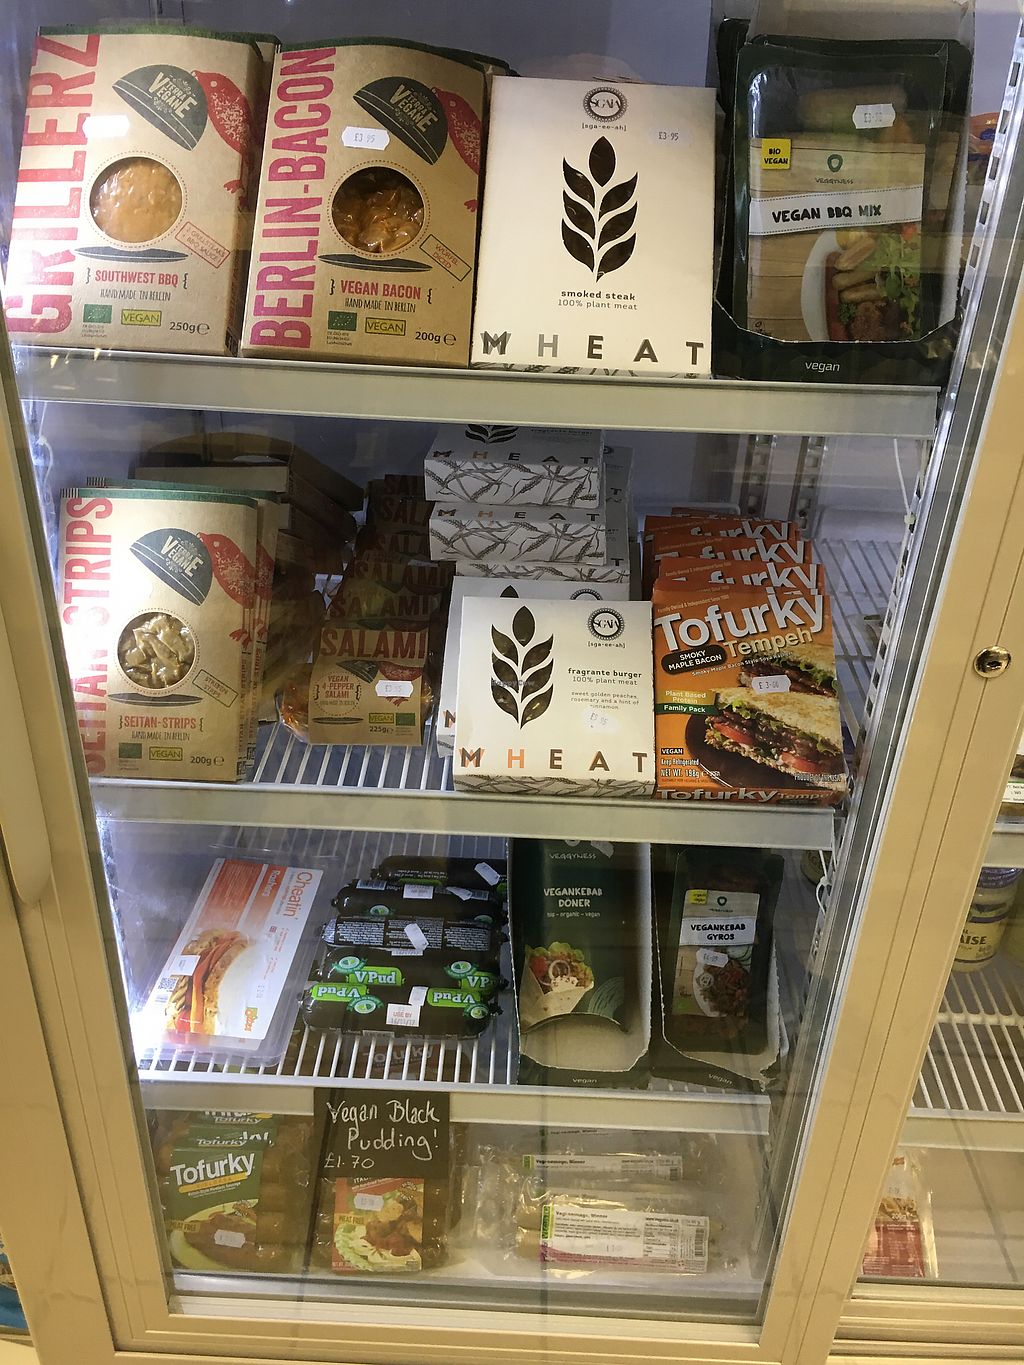 """Photo of Farplace Vegan Store  by <a href=""""/members/profile/hack_man"""">hack_man</a> <br/>Meat free meat fridge  <br/> September 30, 2017  - <a href='/contact/abuse/image/62070/310137'>Report</a>"""